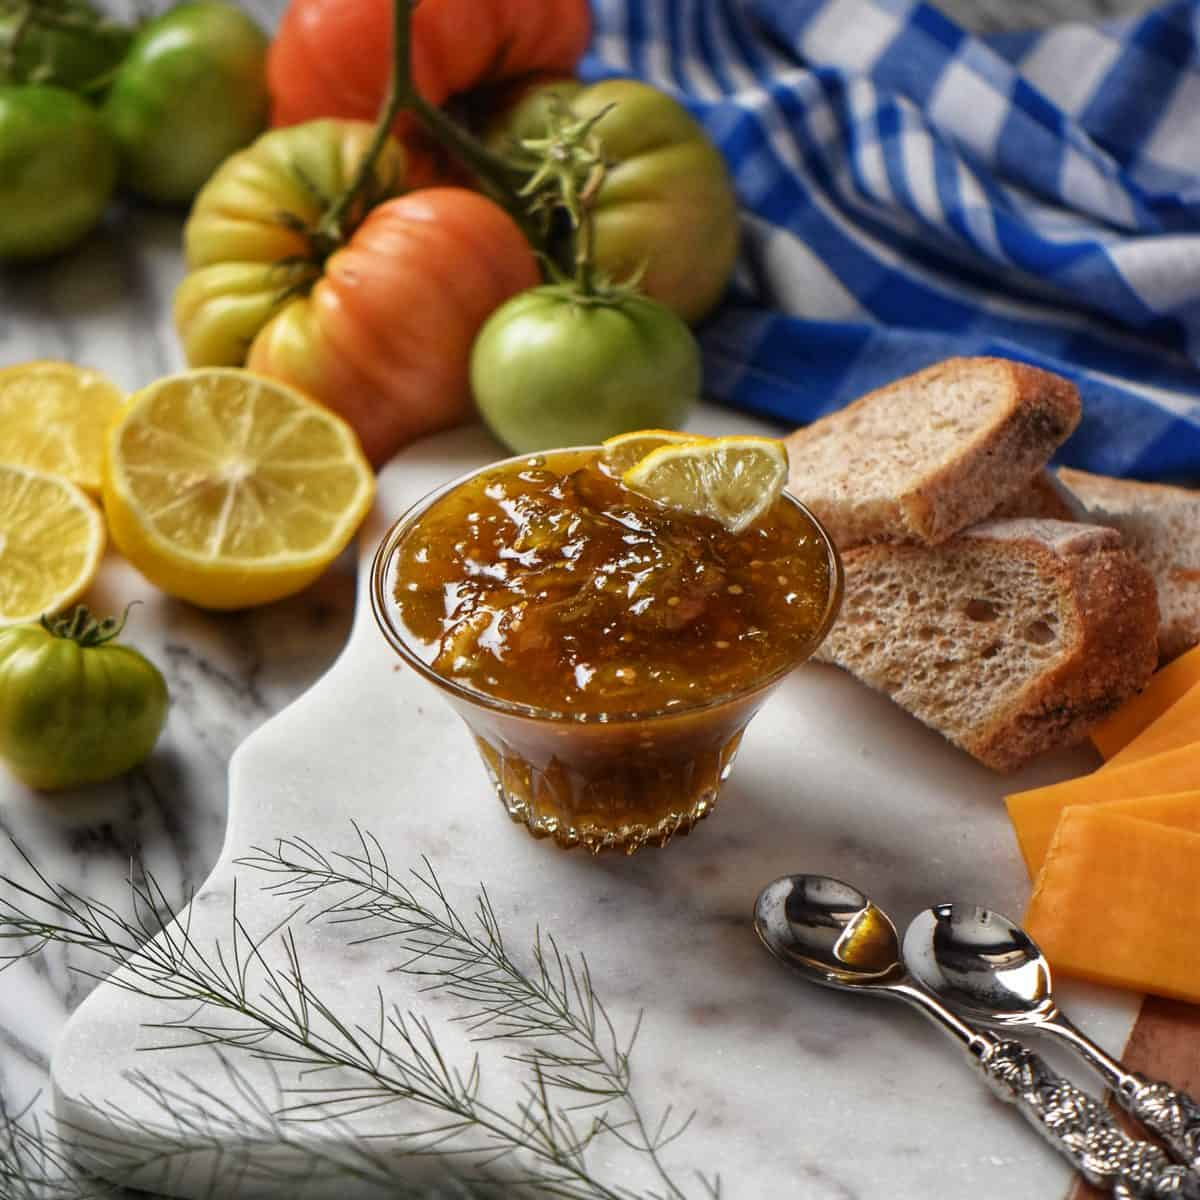 Green tomato jam is in a glass bowl, surrounded by fresh lemons, green tomatoes, and cheese.